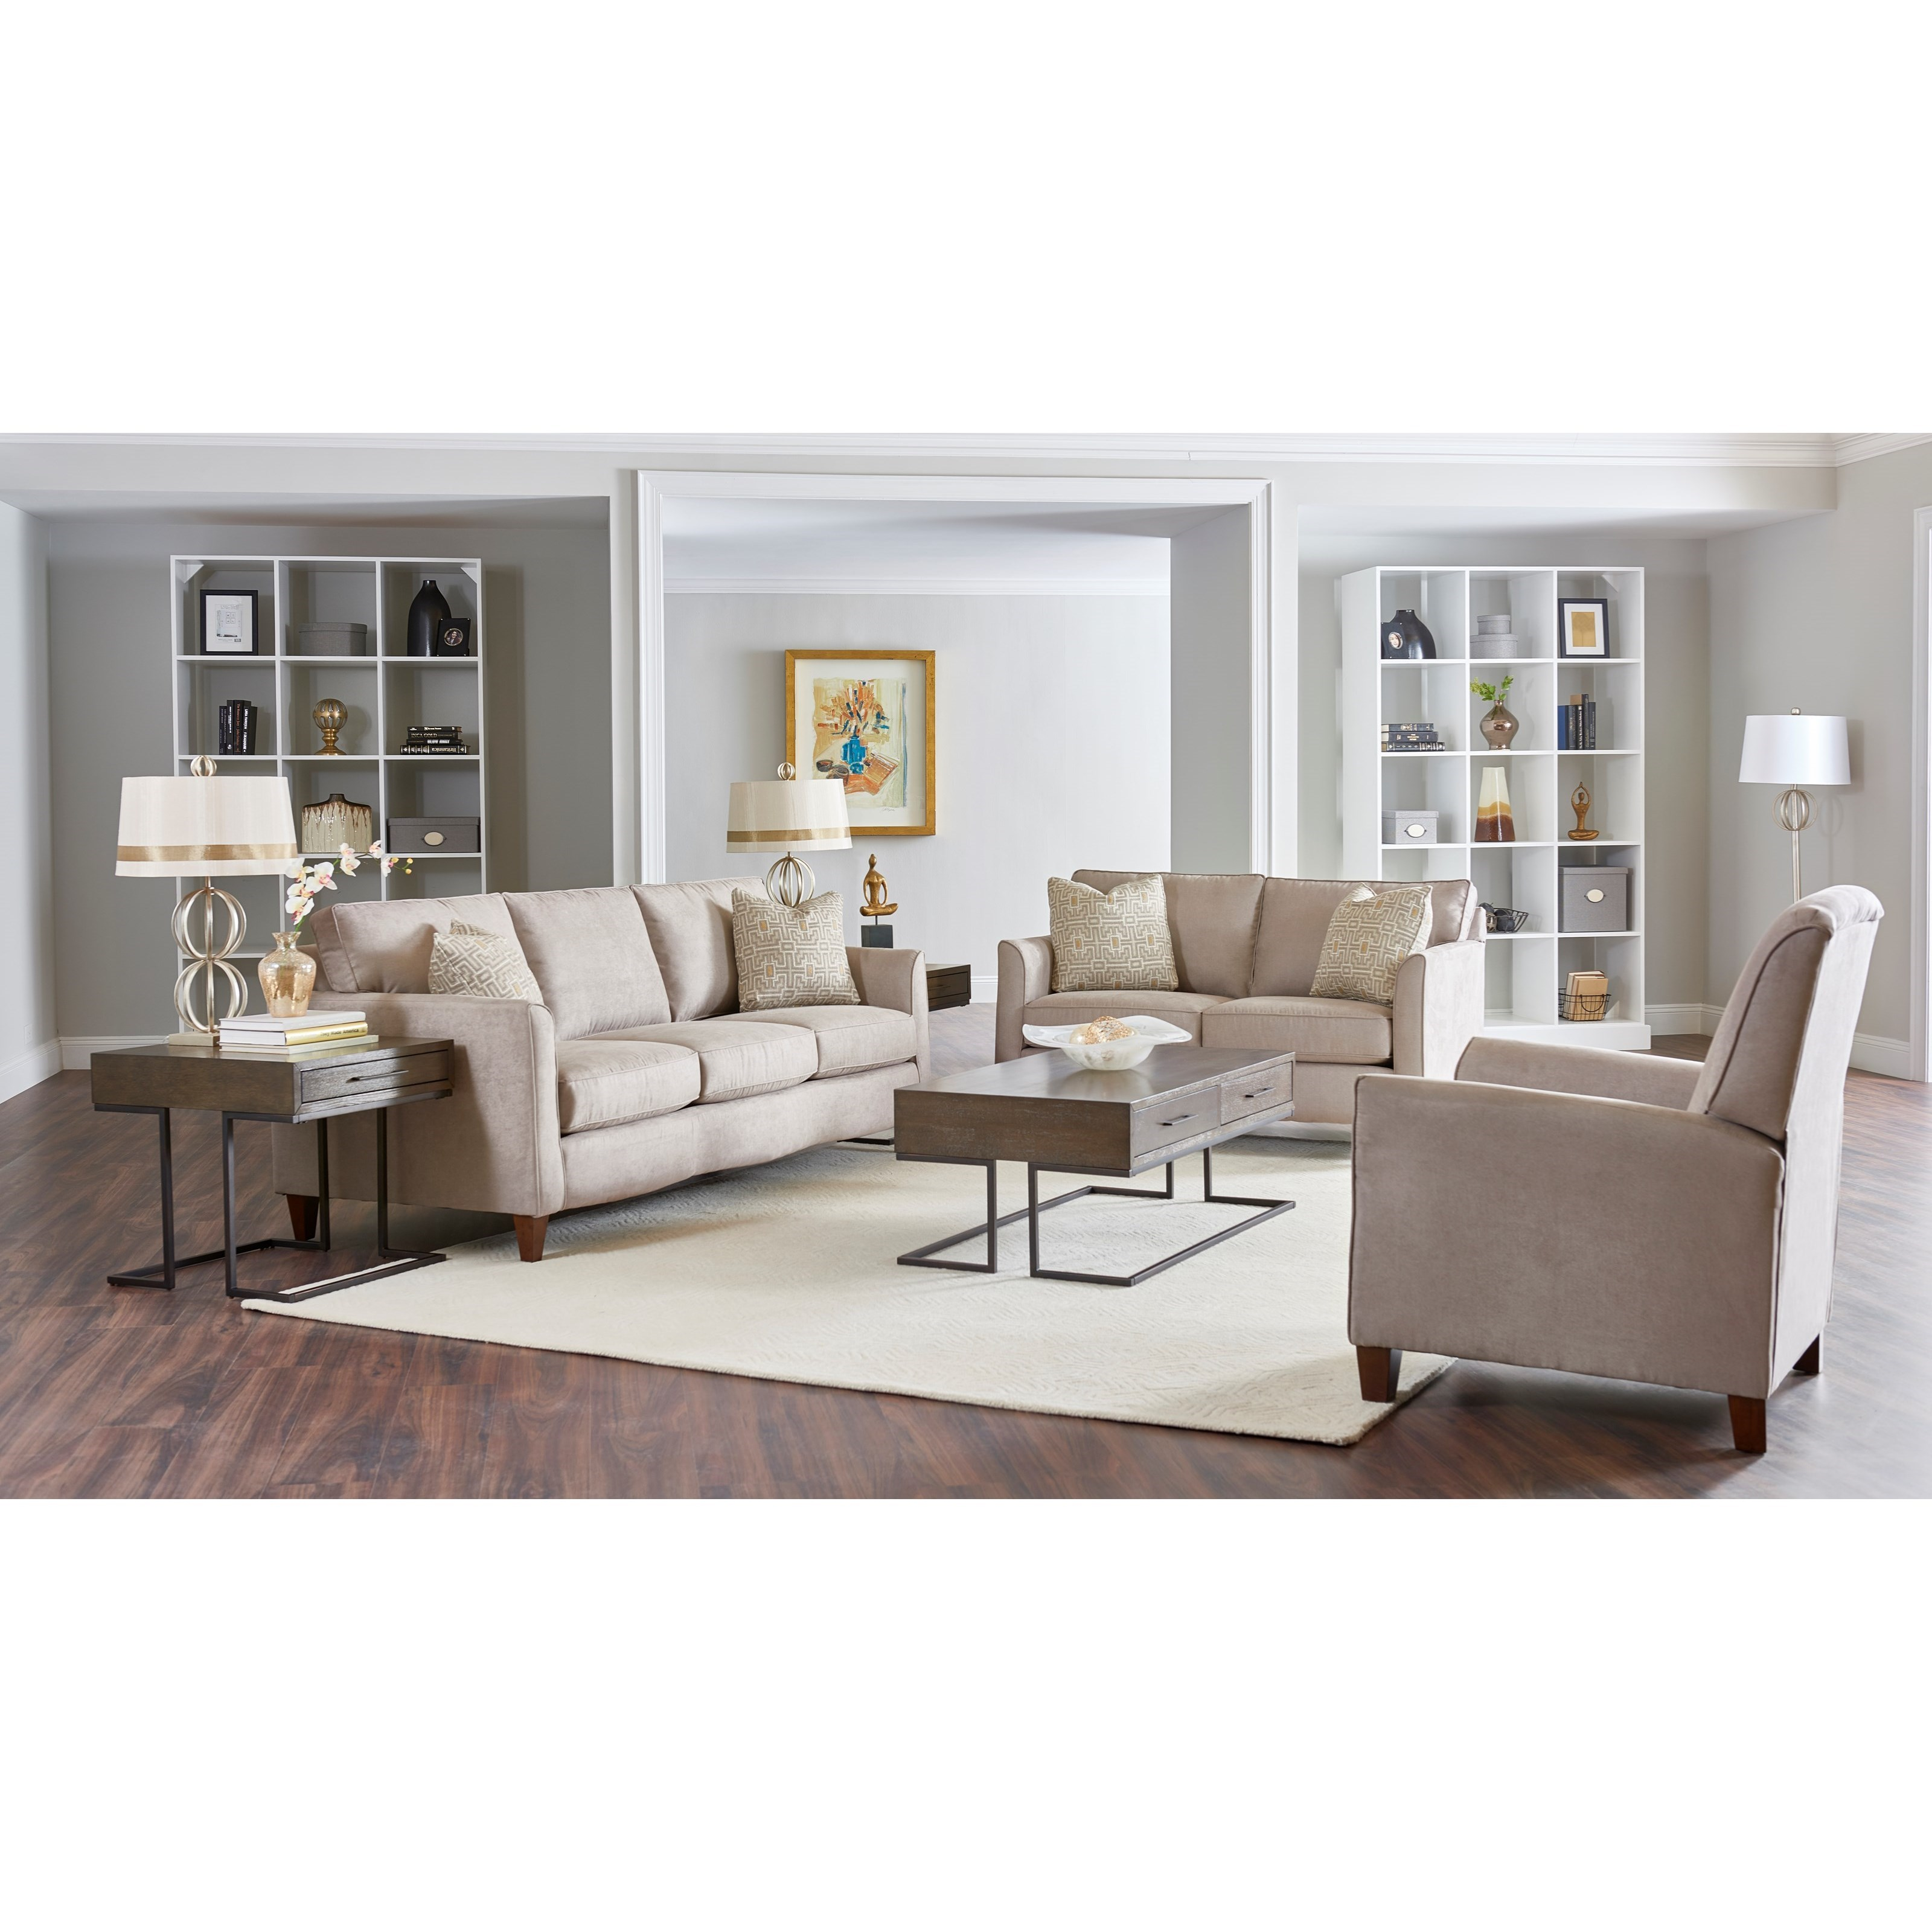 Klaussner Hopewell  Living Room Group - Item Number: K17200 Living Room Group 1